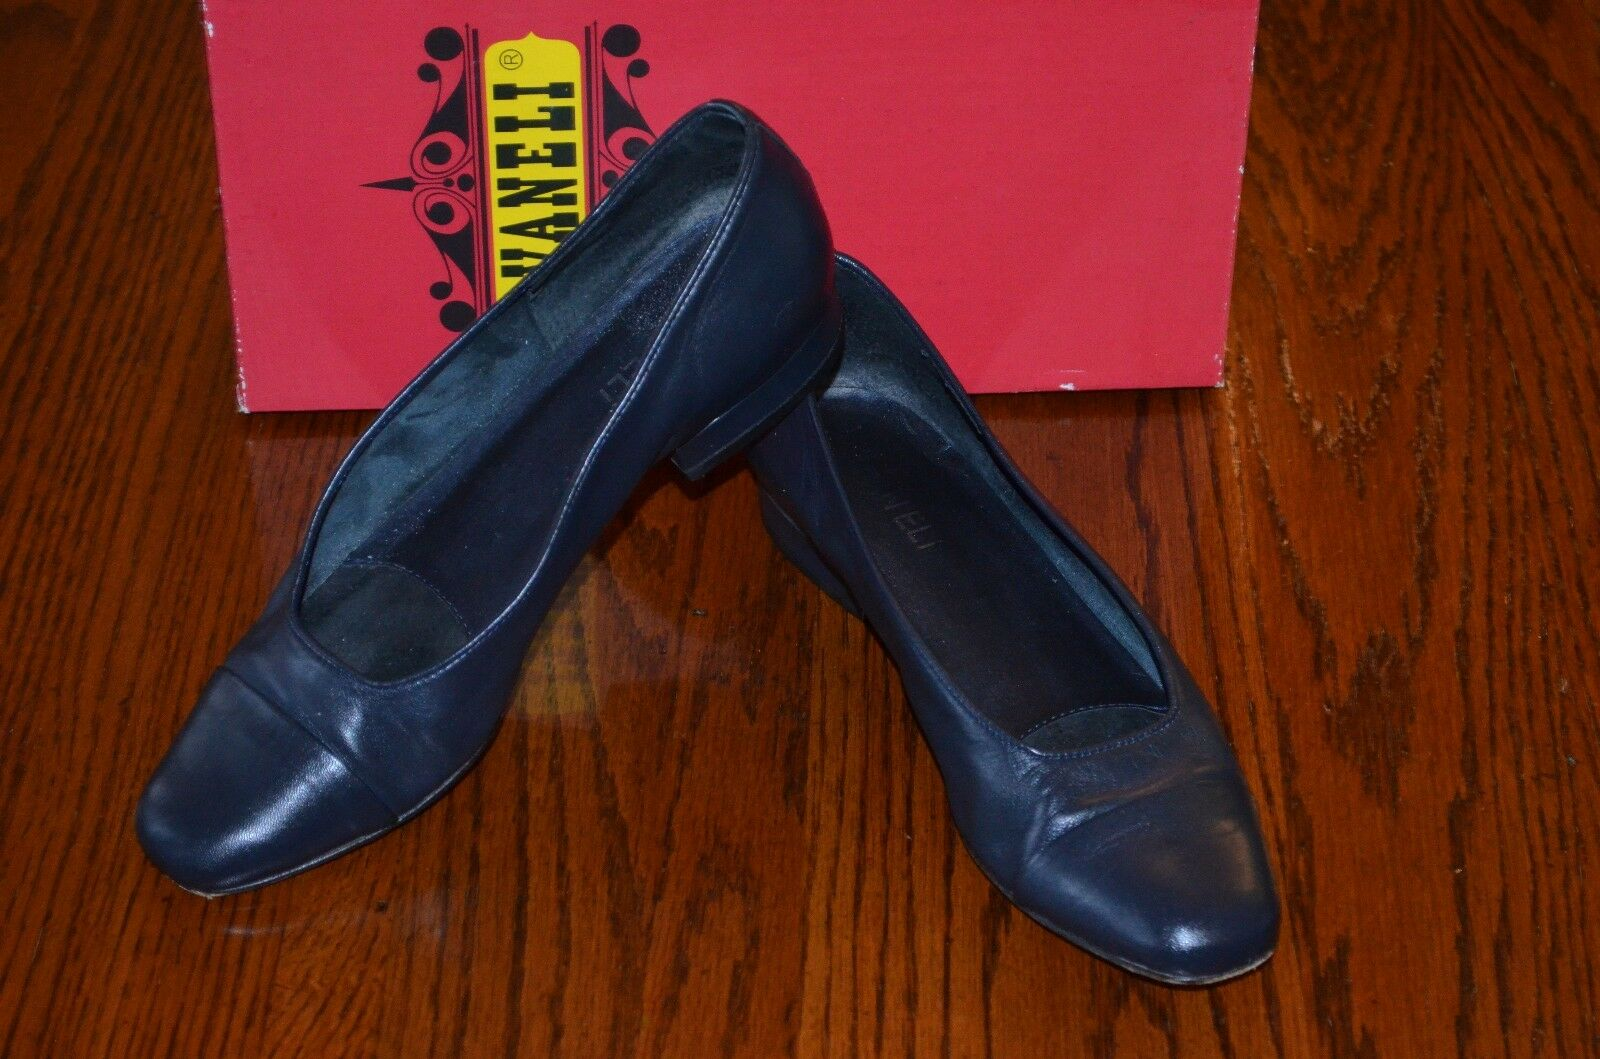 VANELI Women's Navy Nappa  59848 Low Heel Loafers SZ 7 M - Excellent IOB